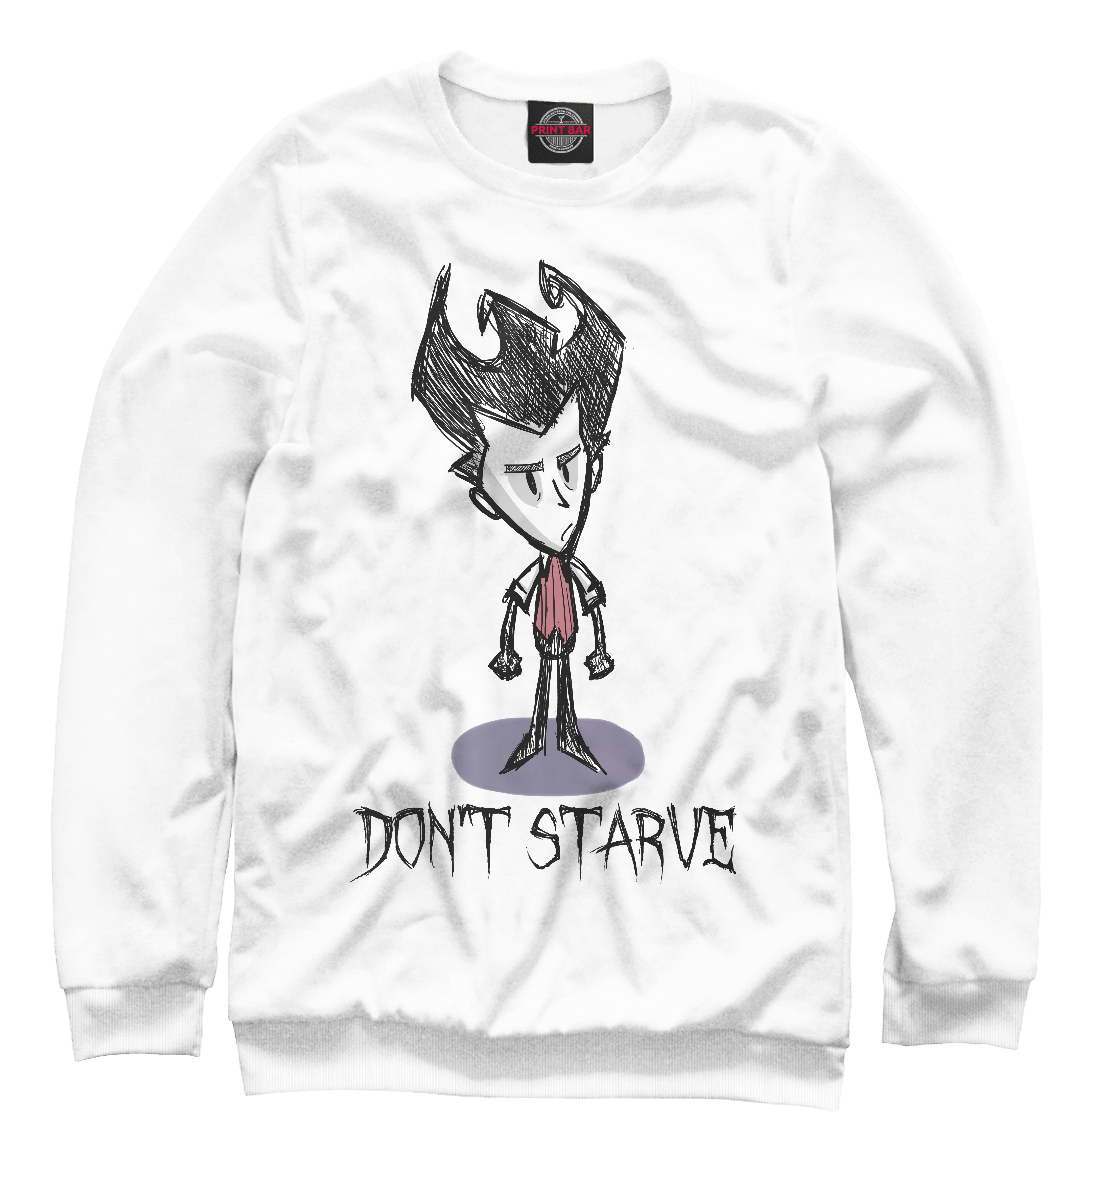 Купить Dont Starve, Printbar, Свитшоты, RPG-817881-swi-2